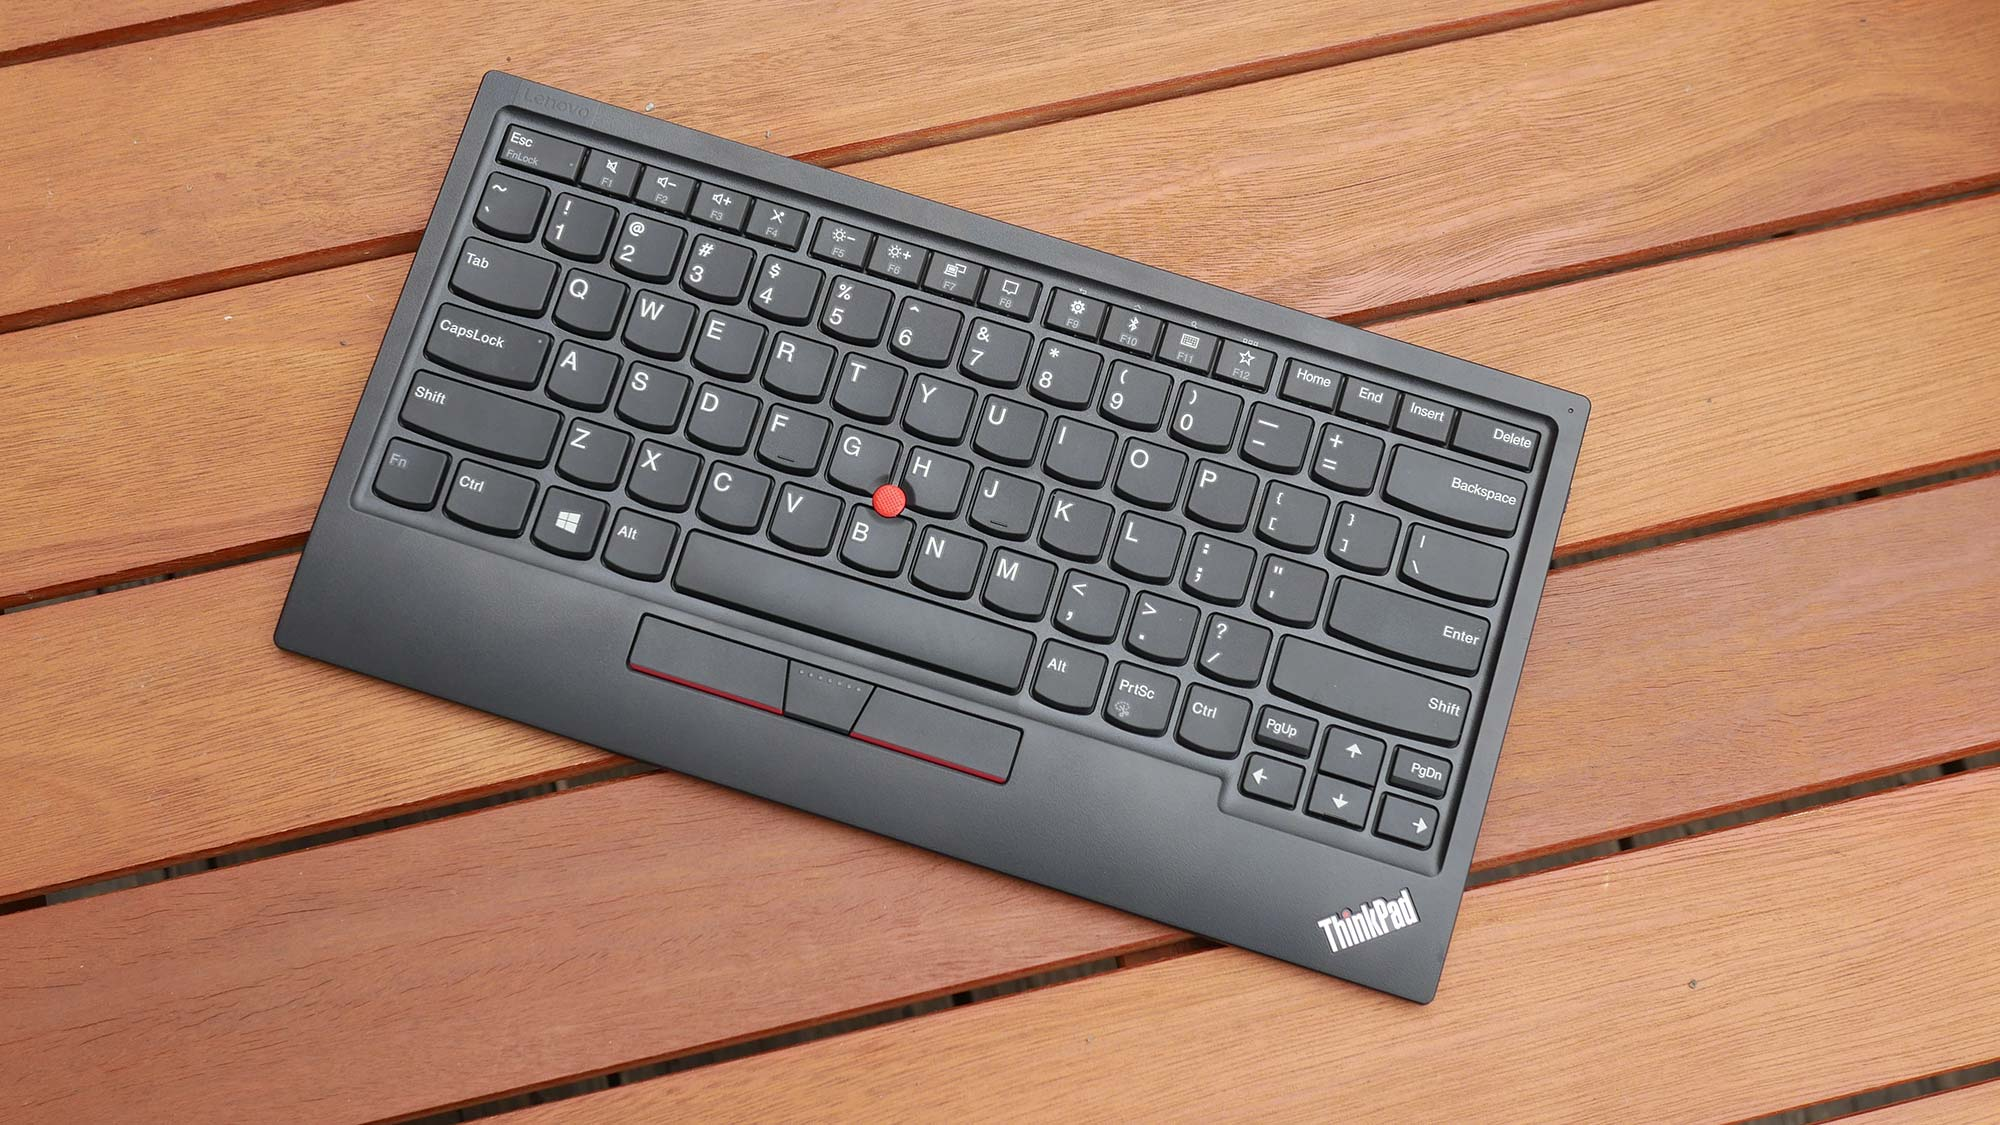 Lenovo Thinkpad Trackpoint Keyboard Ii Review Laptop Mag